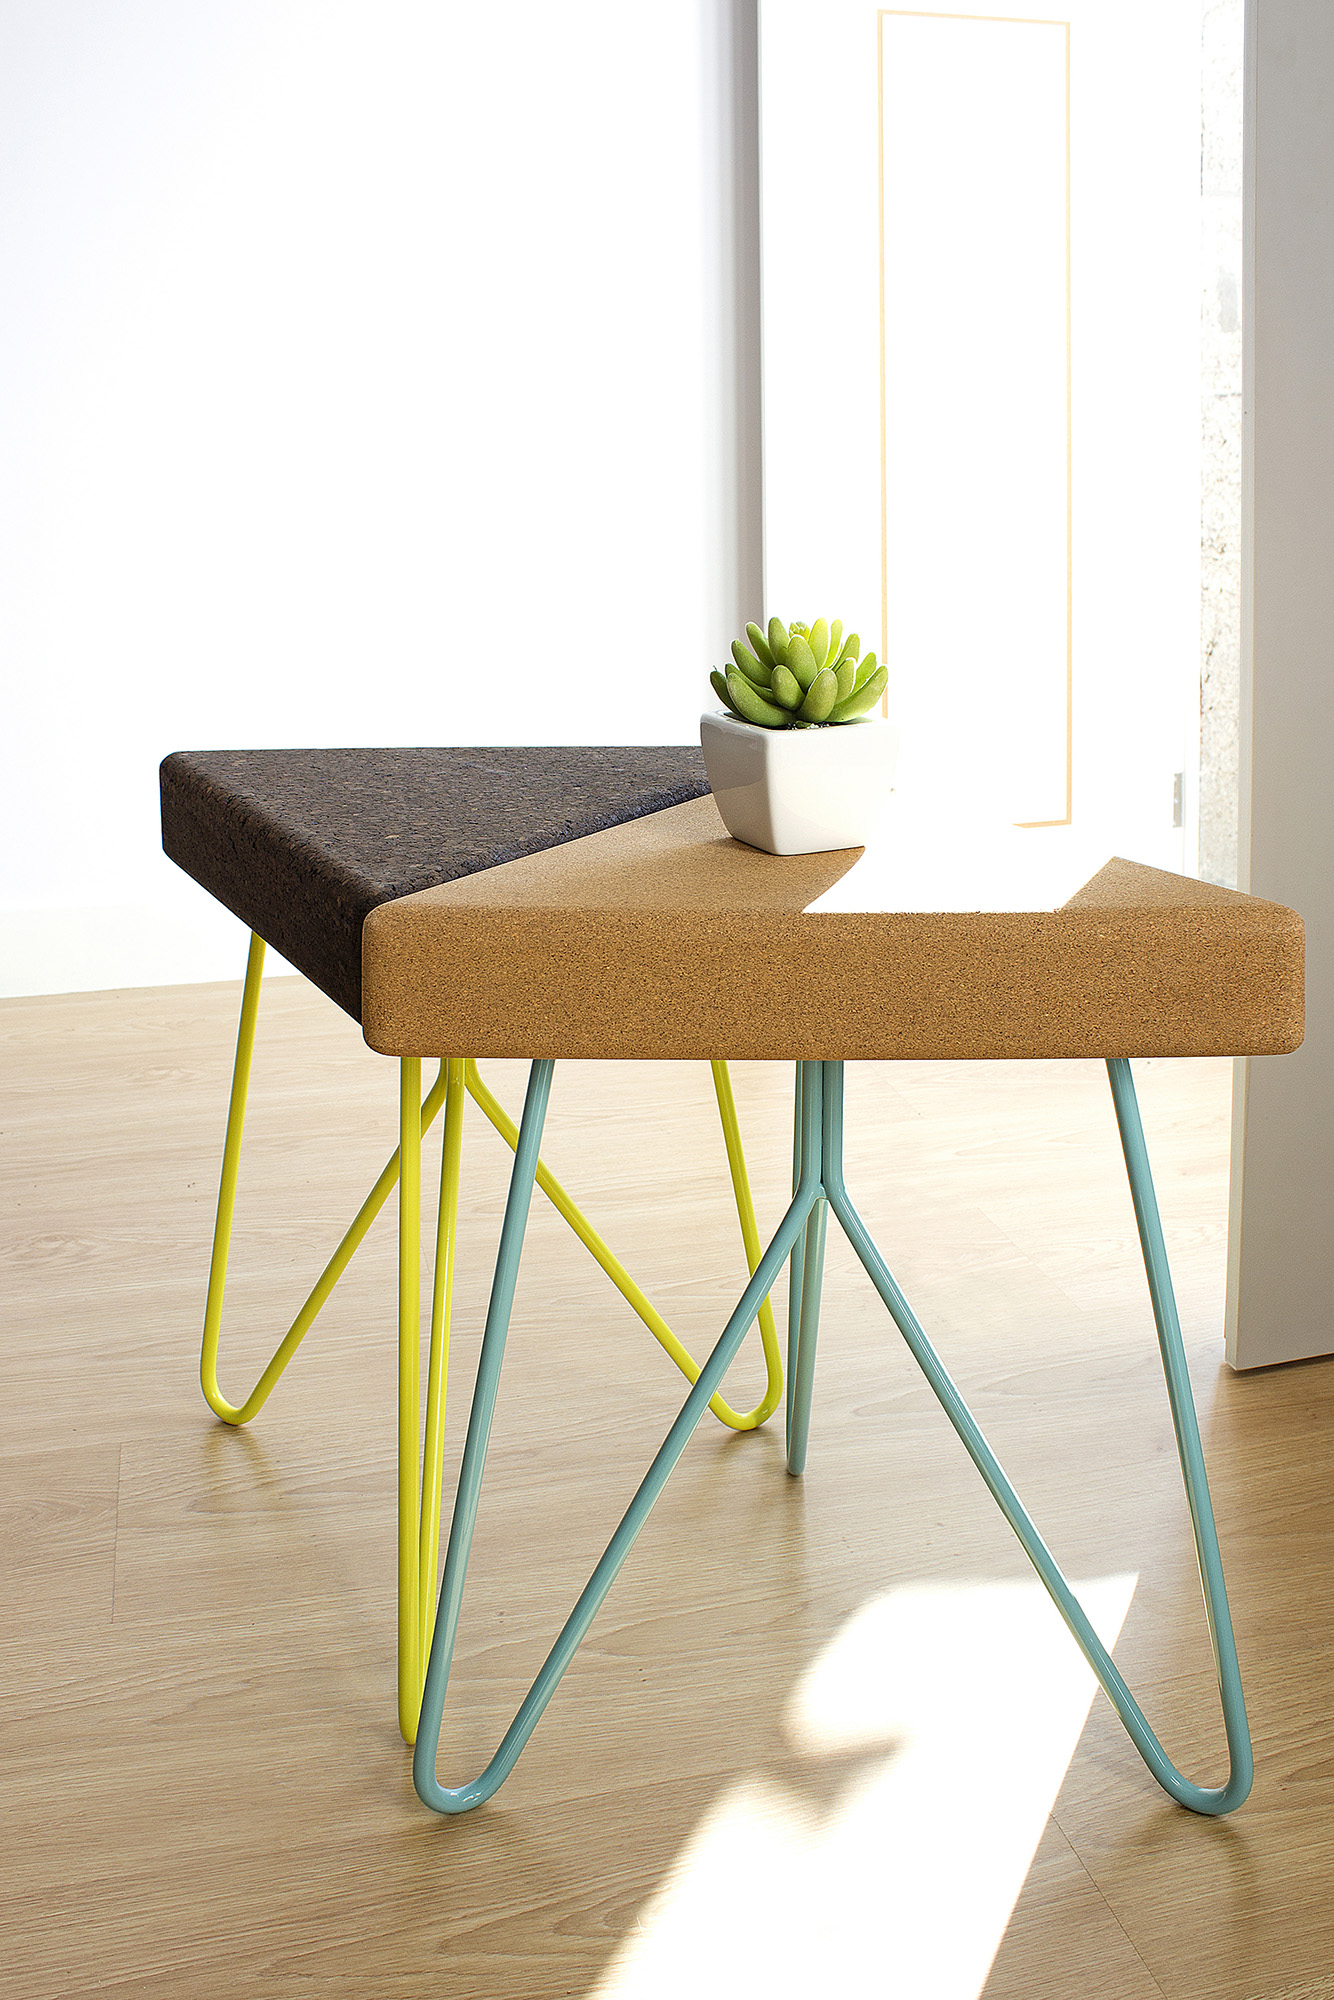 low-Galula-tres-stool-table-dark-yellow-2.jpg